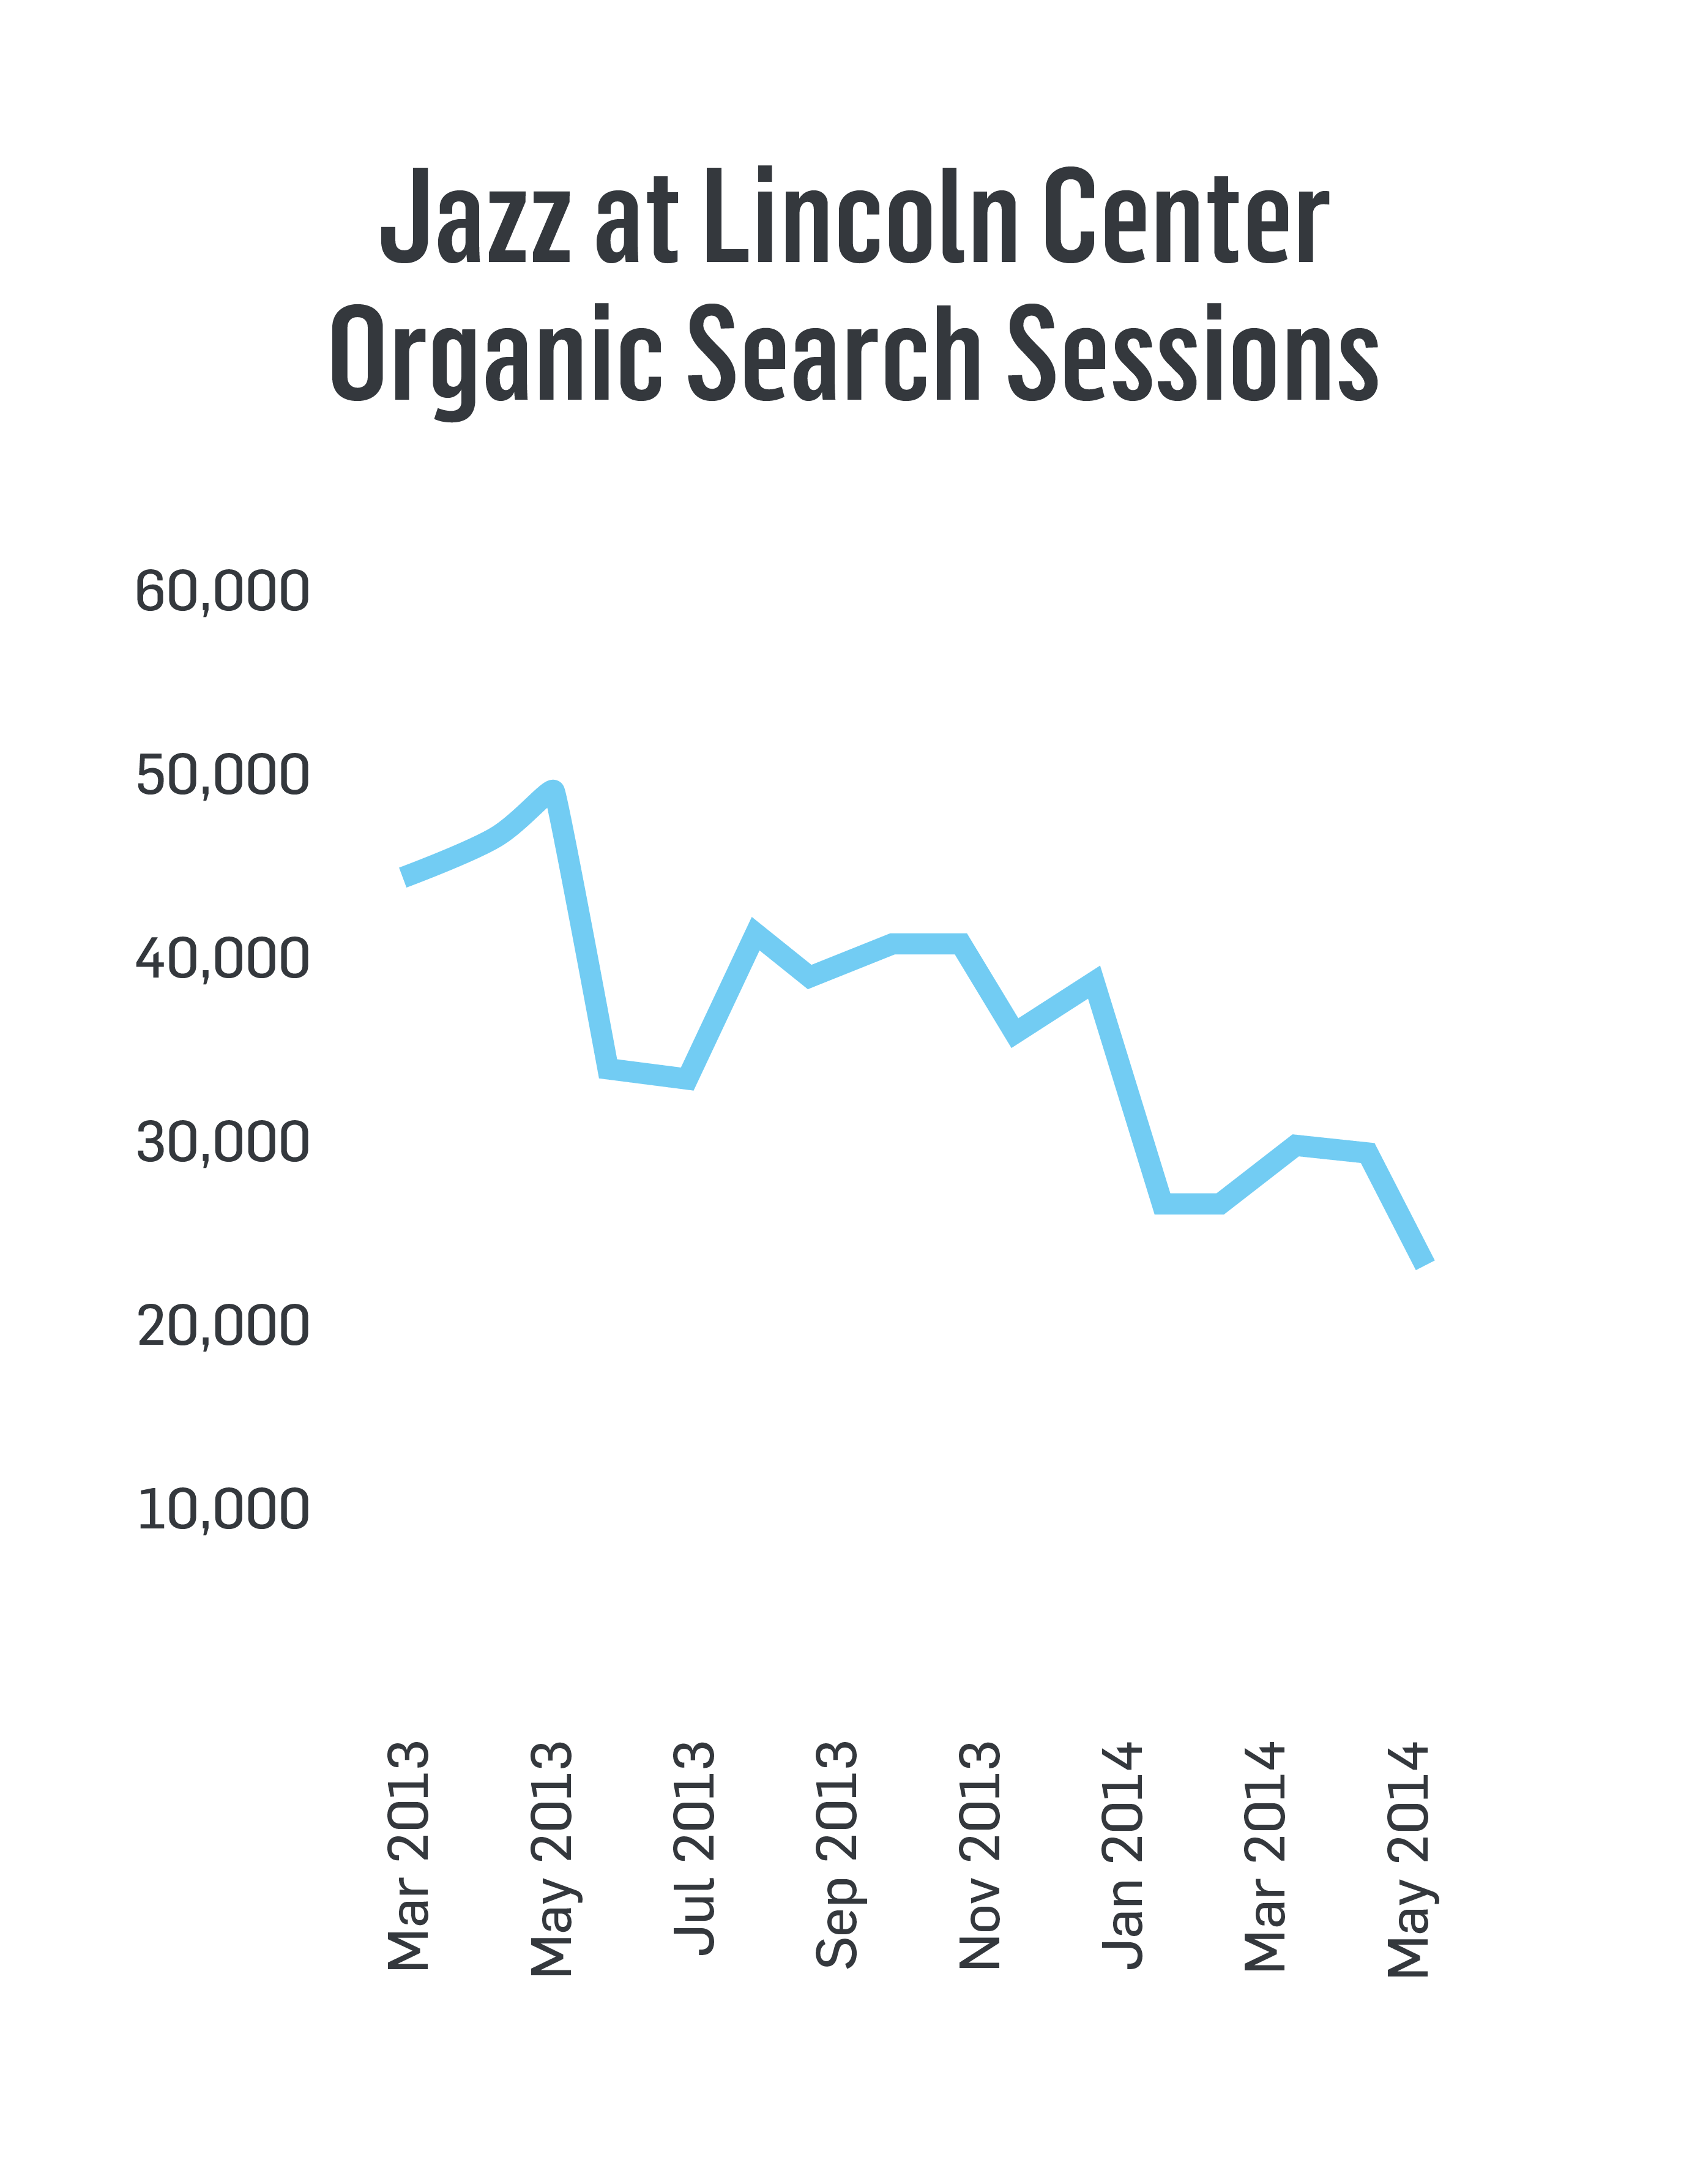 Jazz at Lincoln Center Organic Search Sessions March 2013-May 2014